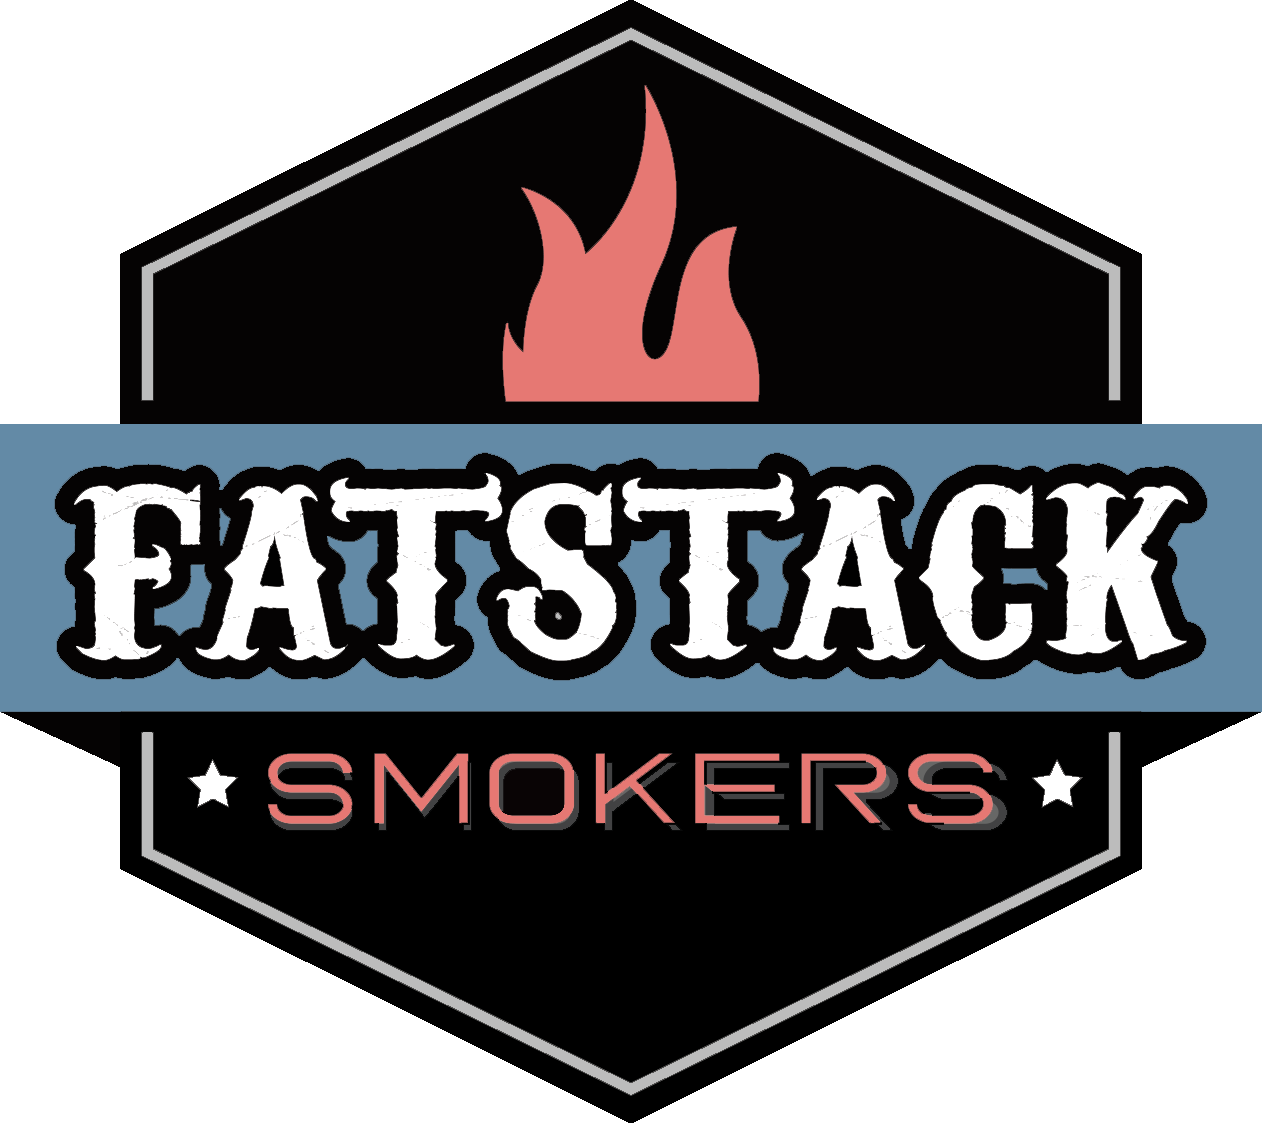 FatStack Smokers